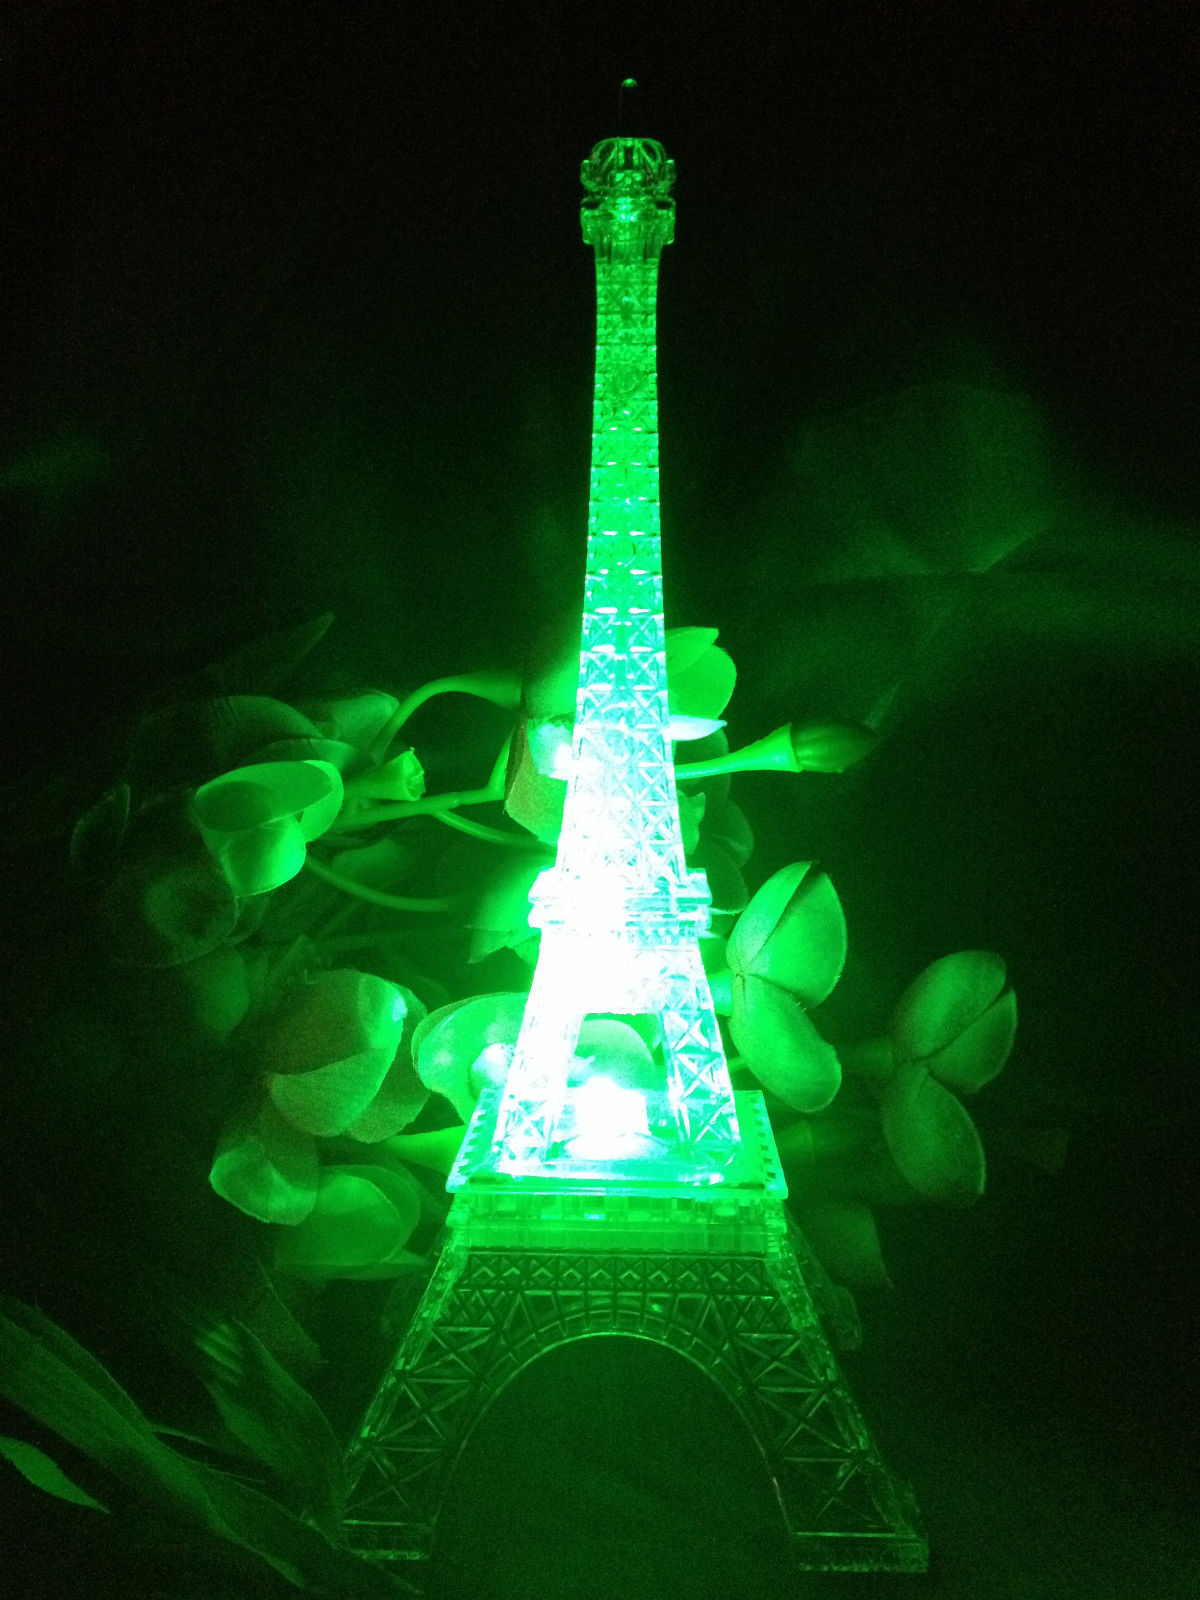 desk chair for sale jerry wheelchair 9 inch light up acrylic led eiffel tower souvenir w/ build in multicolor lights. battery ...